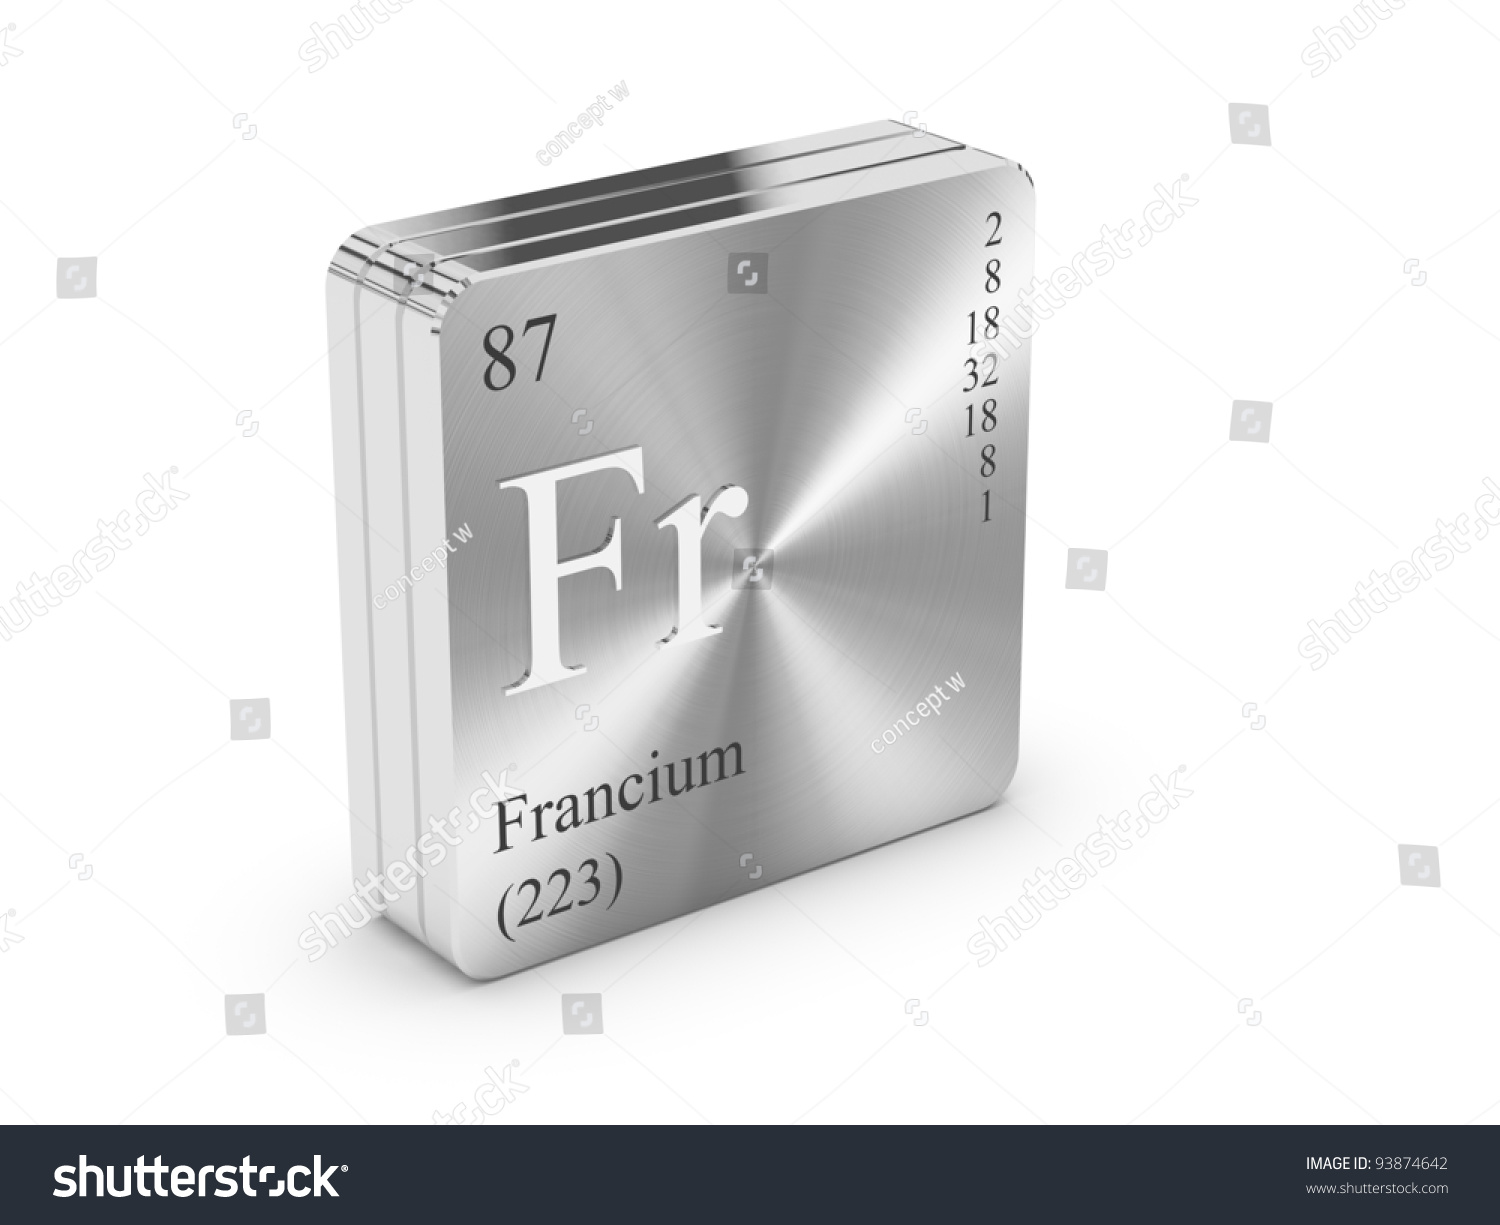 Francium on the periodic table images periodic table images francium on periodic table choice image periodic table images francium element periodic table on metal stock gamestrikefo Image collections